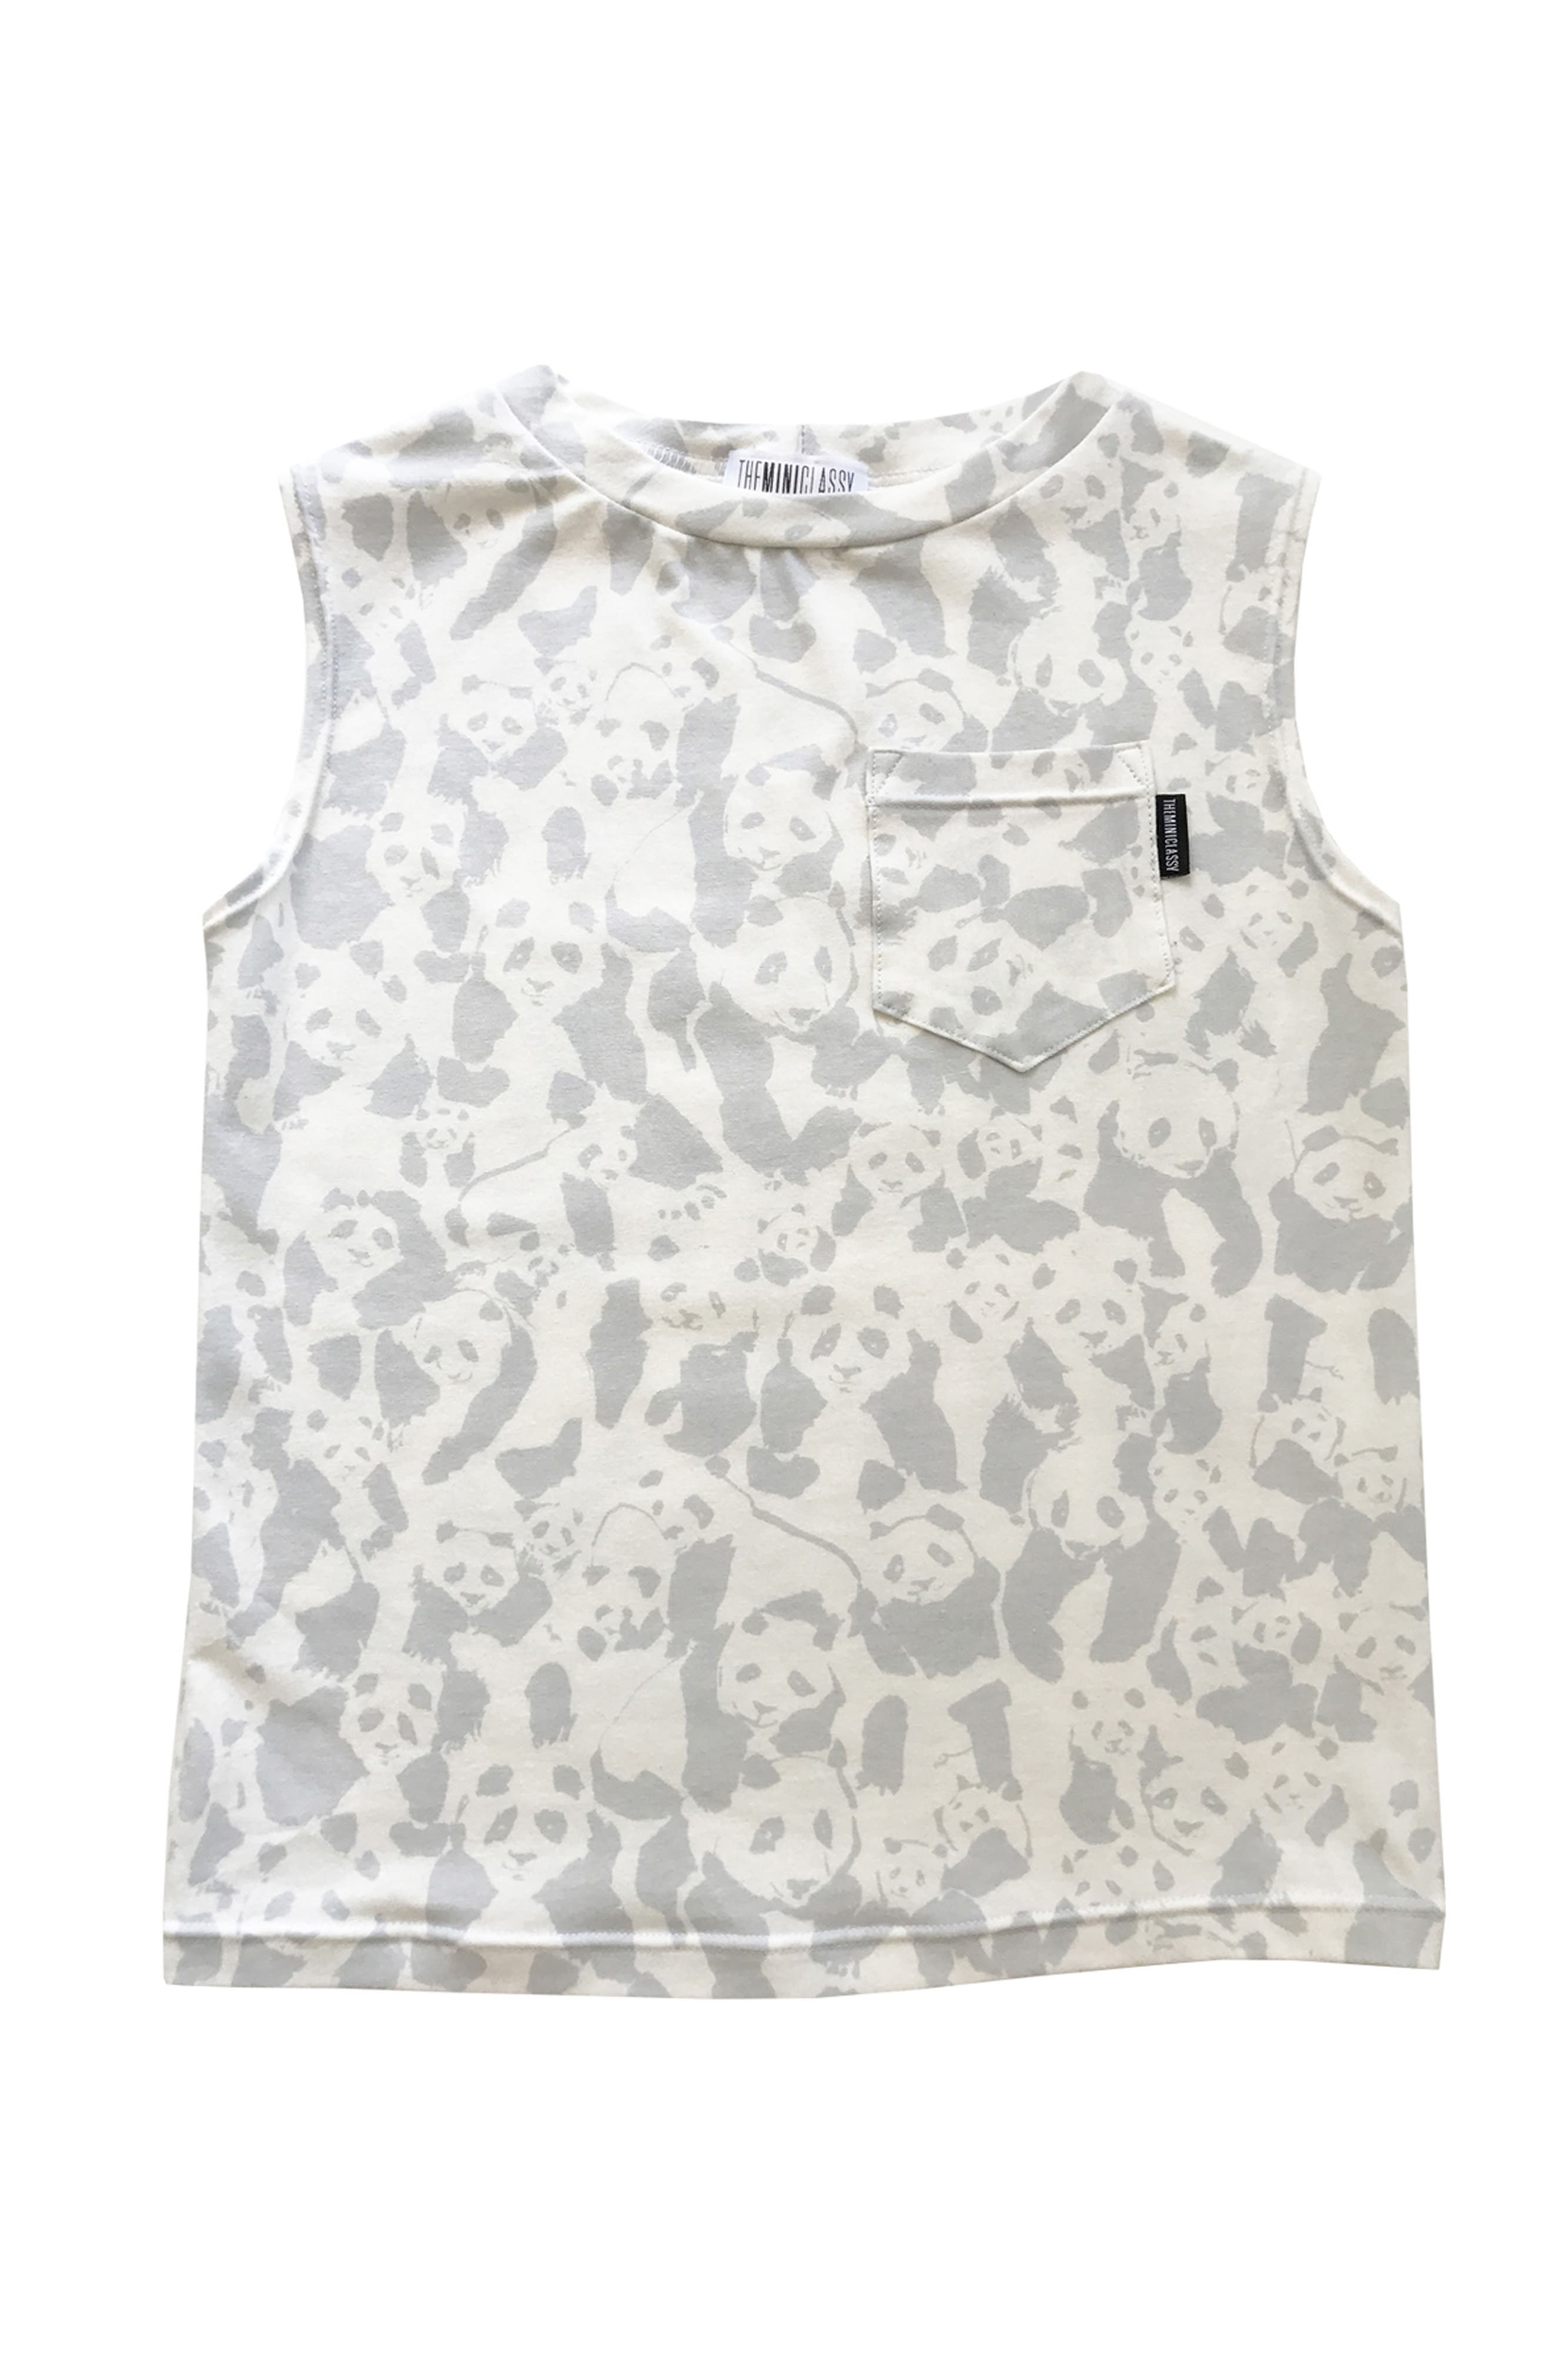 Panda Panda Muscle Shirt,                         Main,                         color, 020